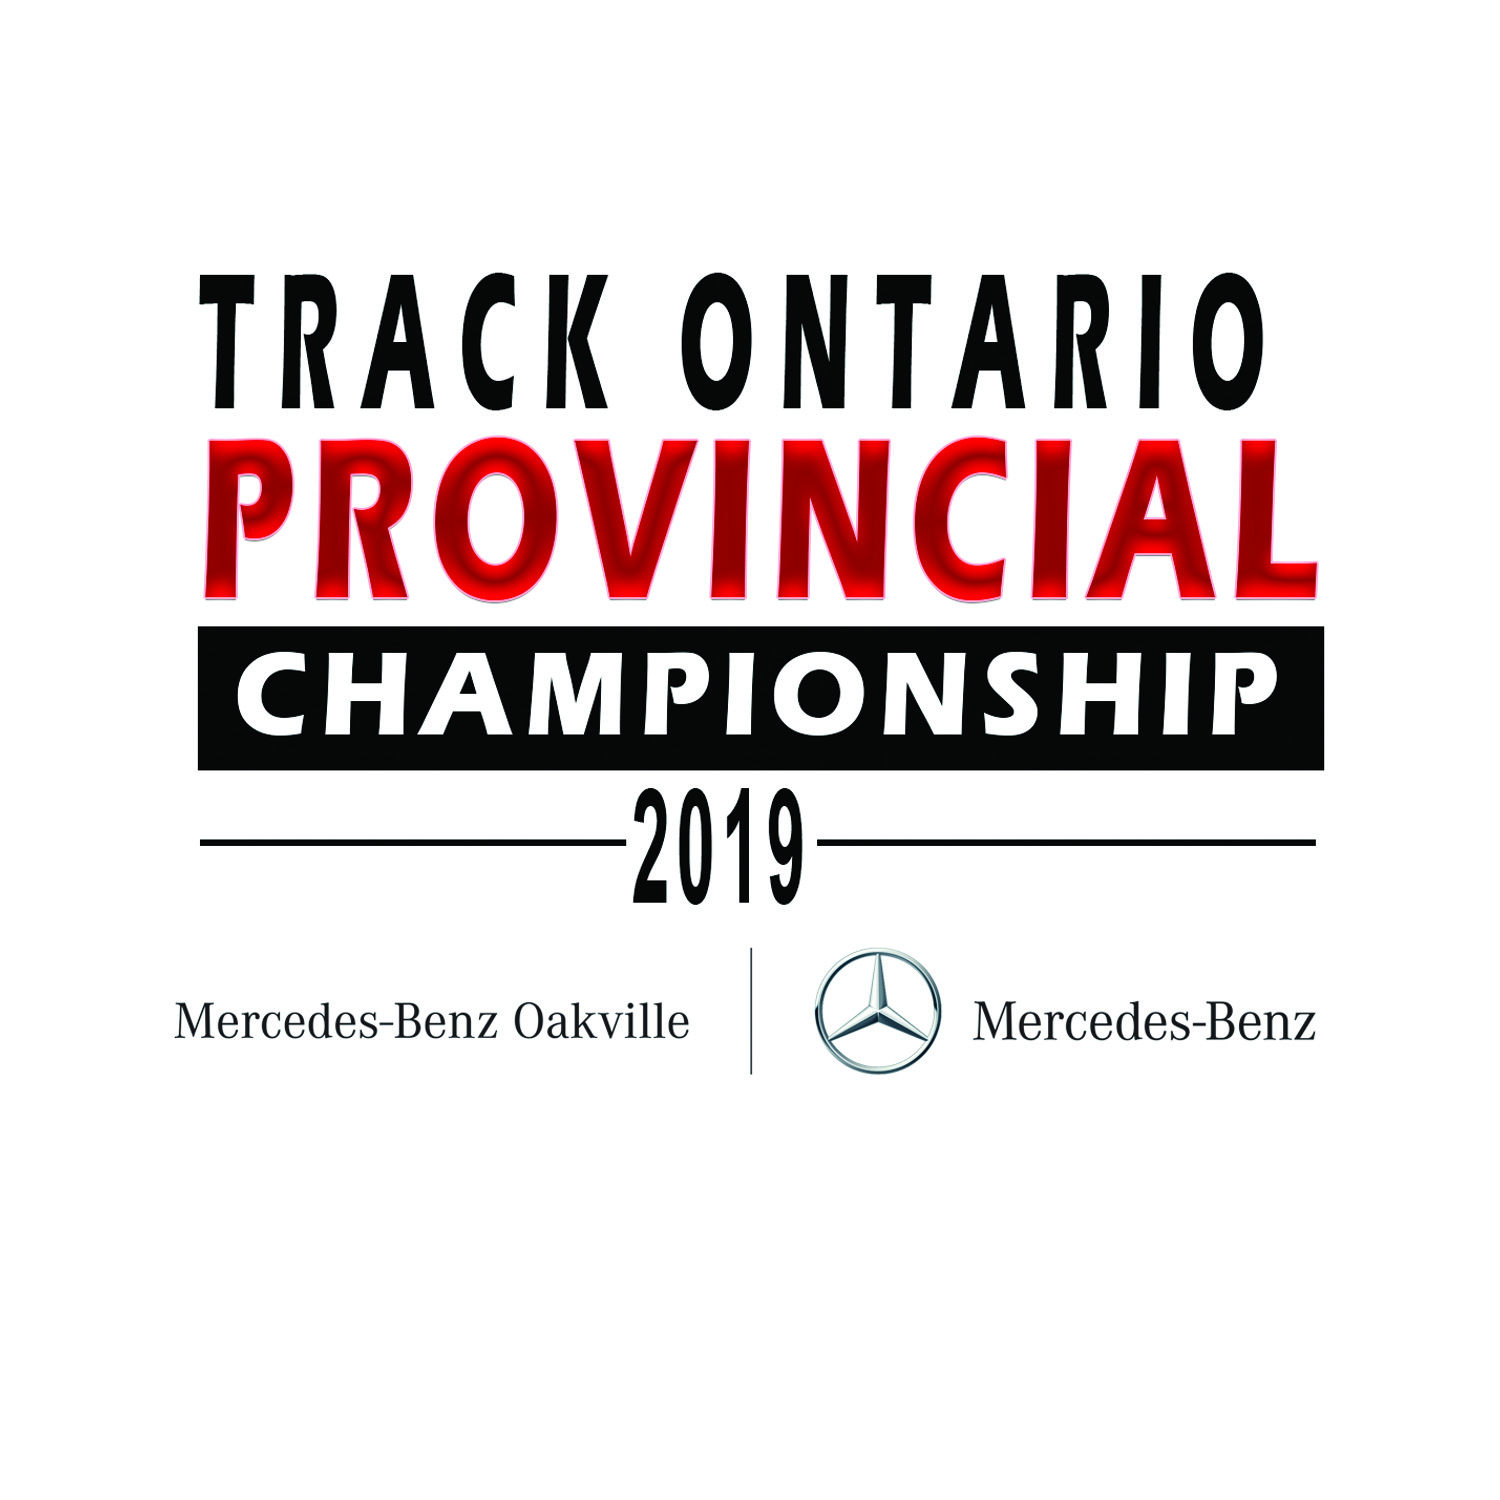 2019 Track Ontario Provincial Championship - Important Information